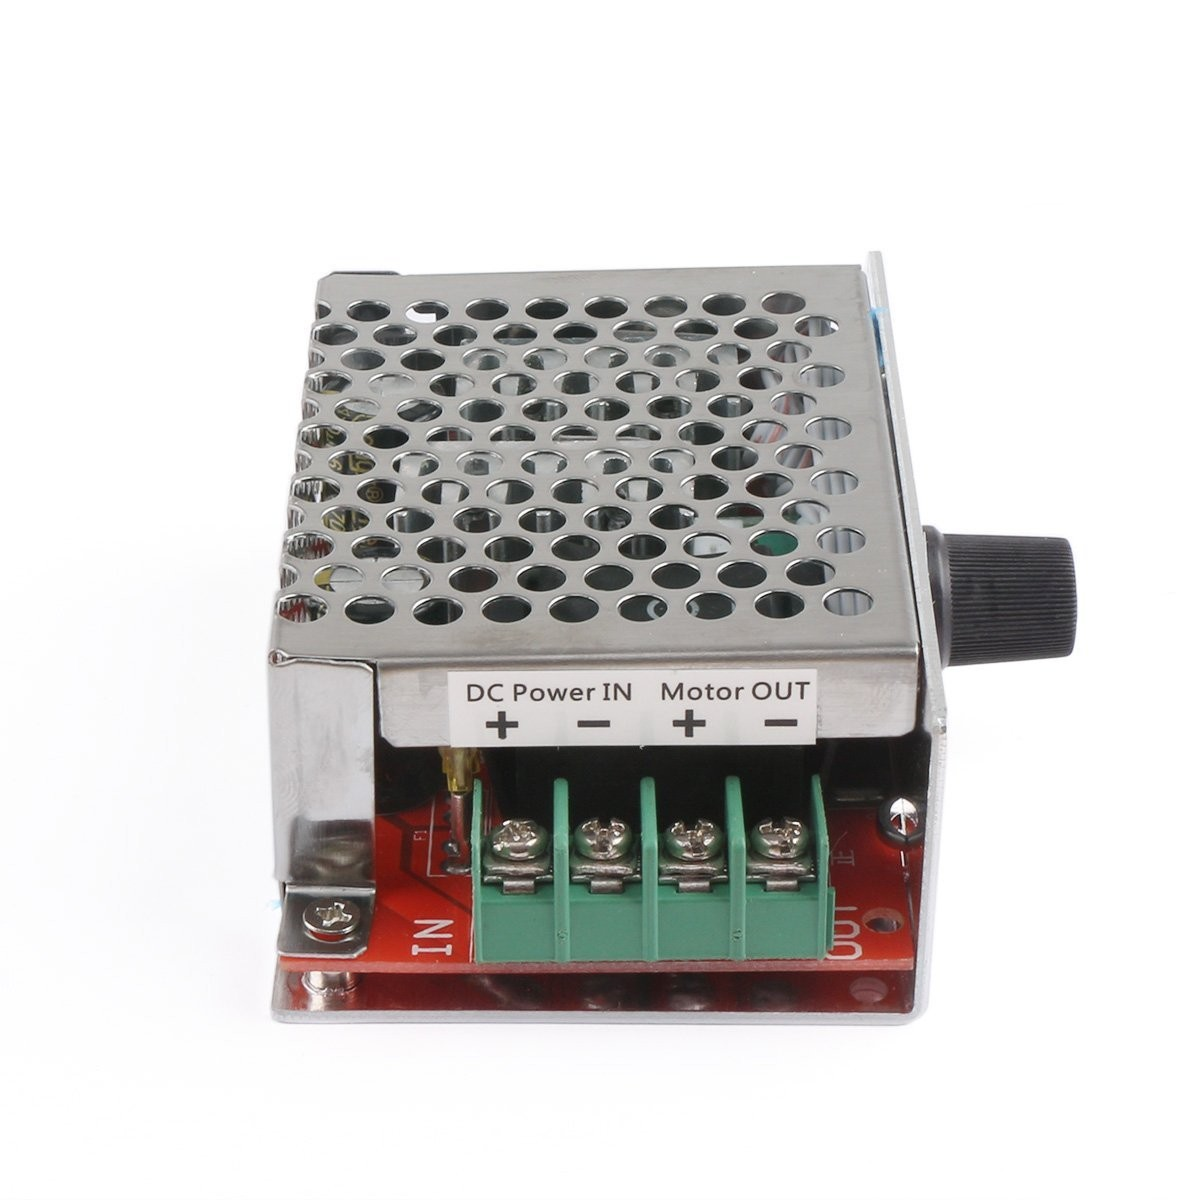 Riorand Pwm Dc Stepper Motor Speed Controller Pulse Width Modulation Is A Circuit To Control Uses Stepless Module 10 60v 20a 600w Switch Dimmer Governor Zoom Lightbox Moreview